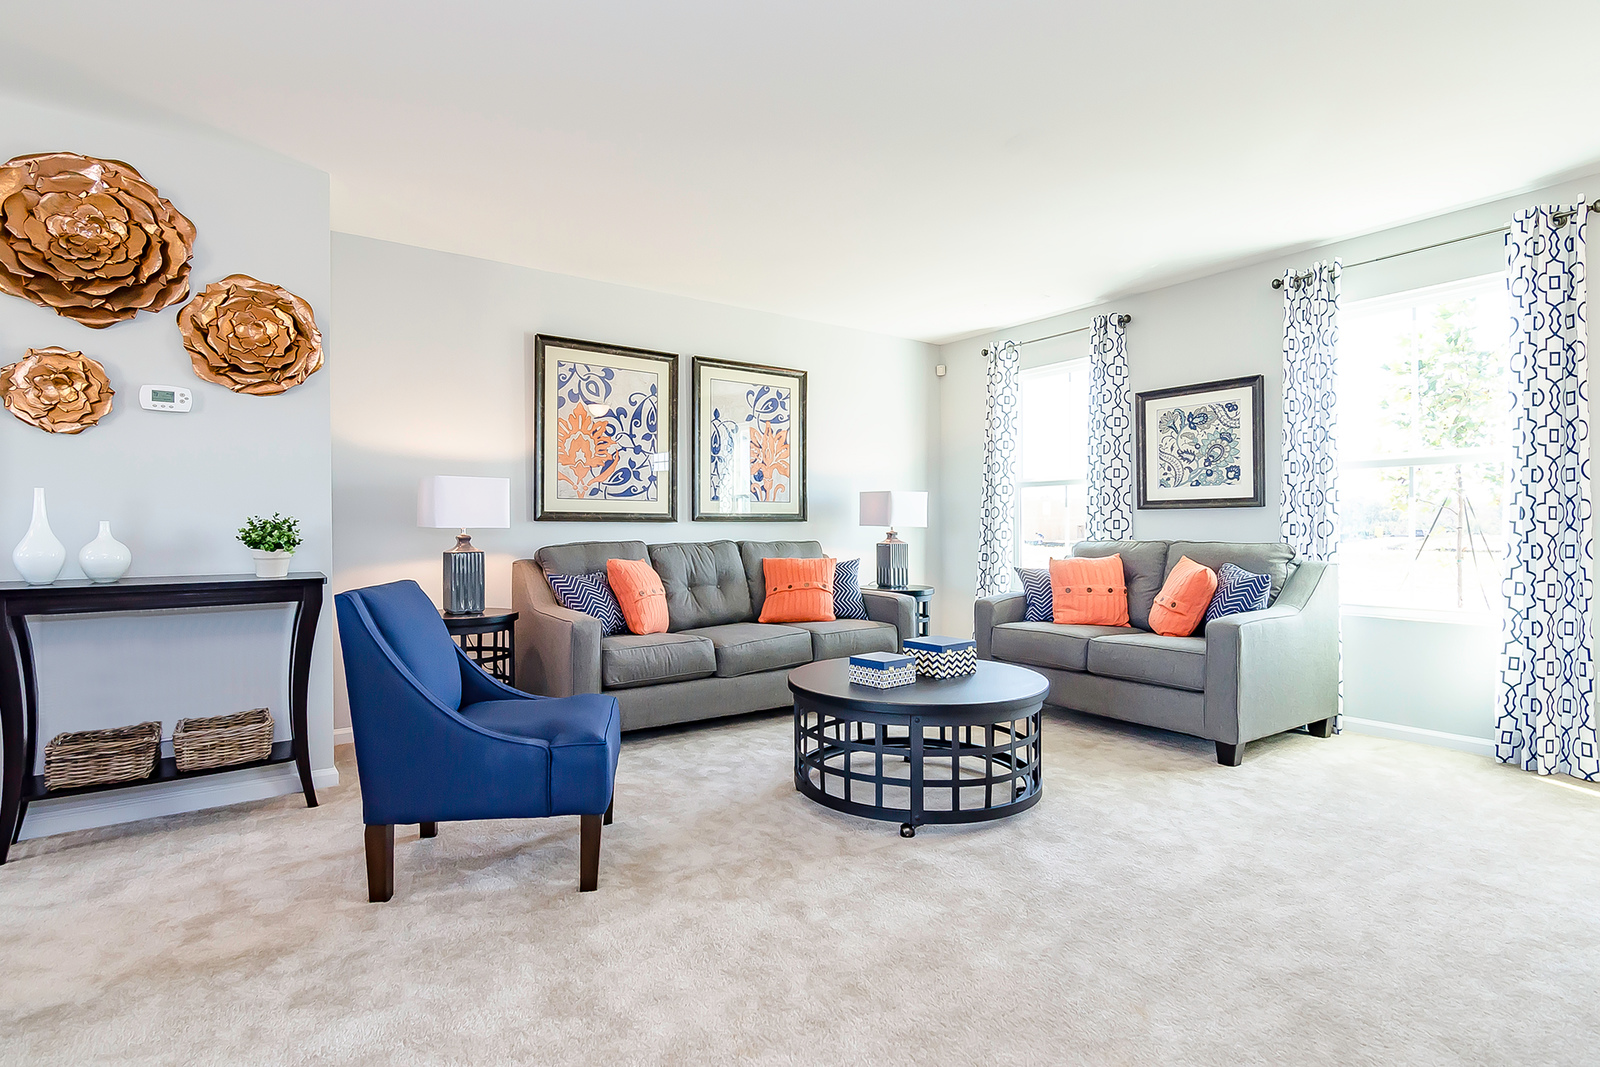 New Homes for sale at Arcadia Springs in Martinsburg, WV within the ...